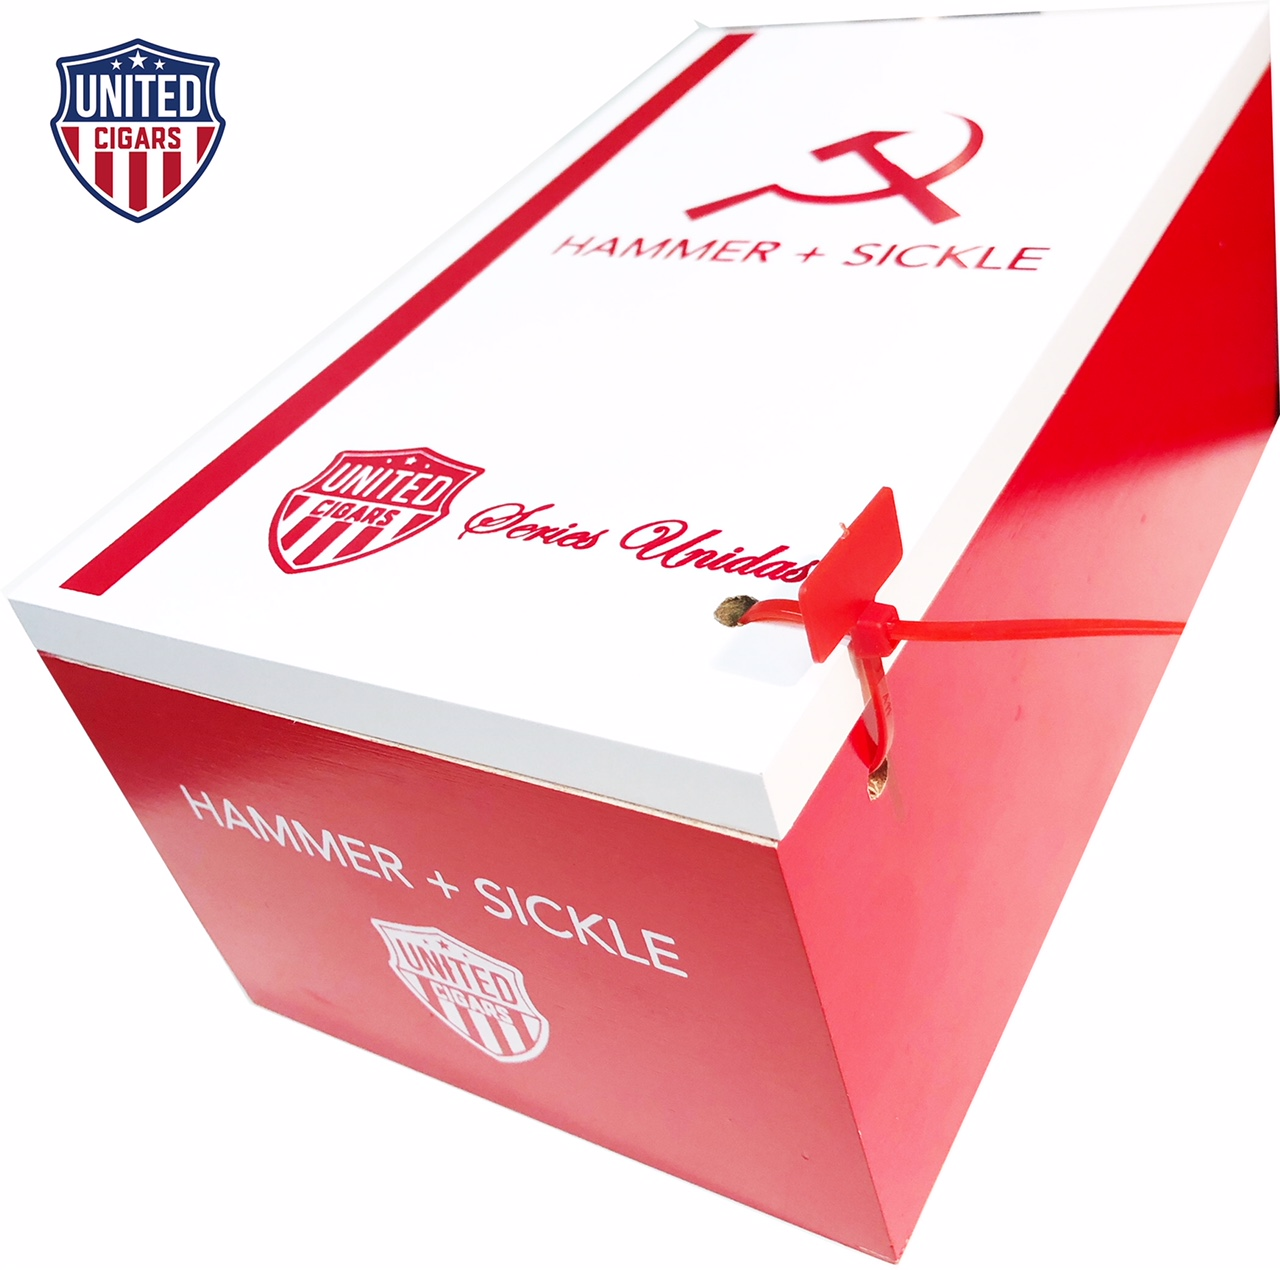 Cigar News: United Cigars Teams up with Hammer + Sickle for Series Unidas Collaboration Release